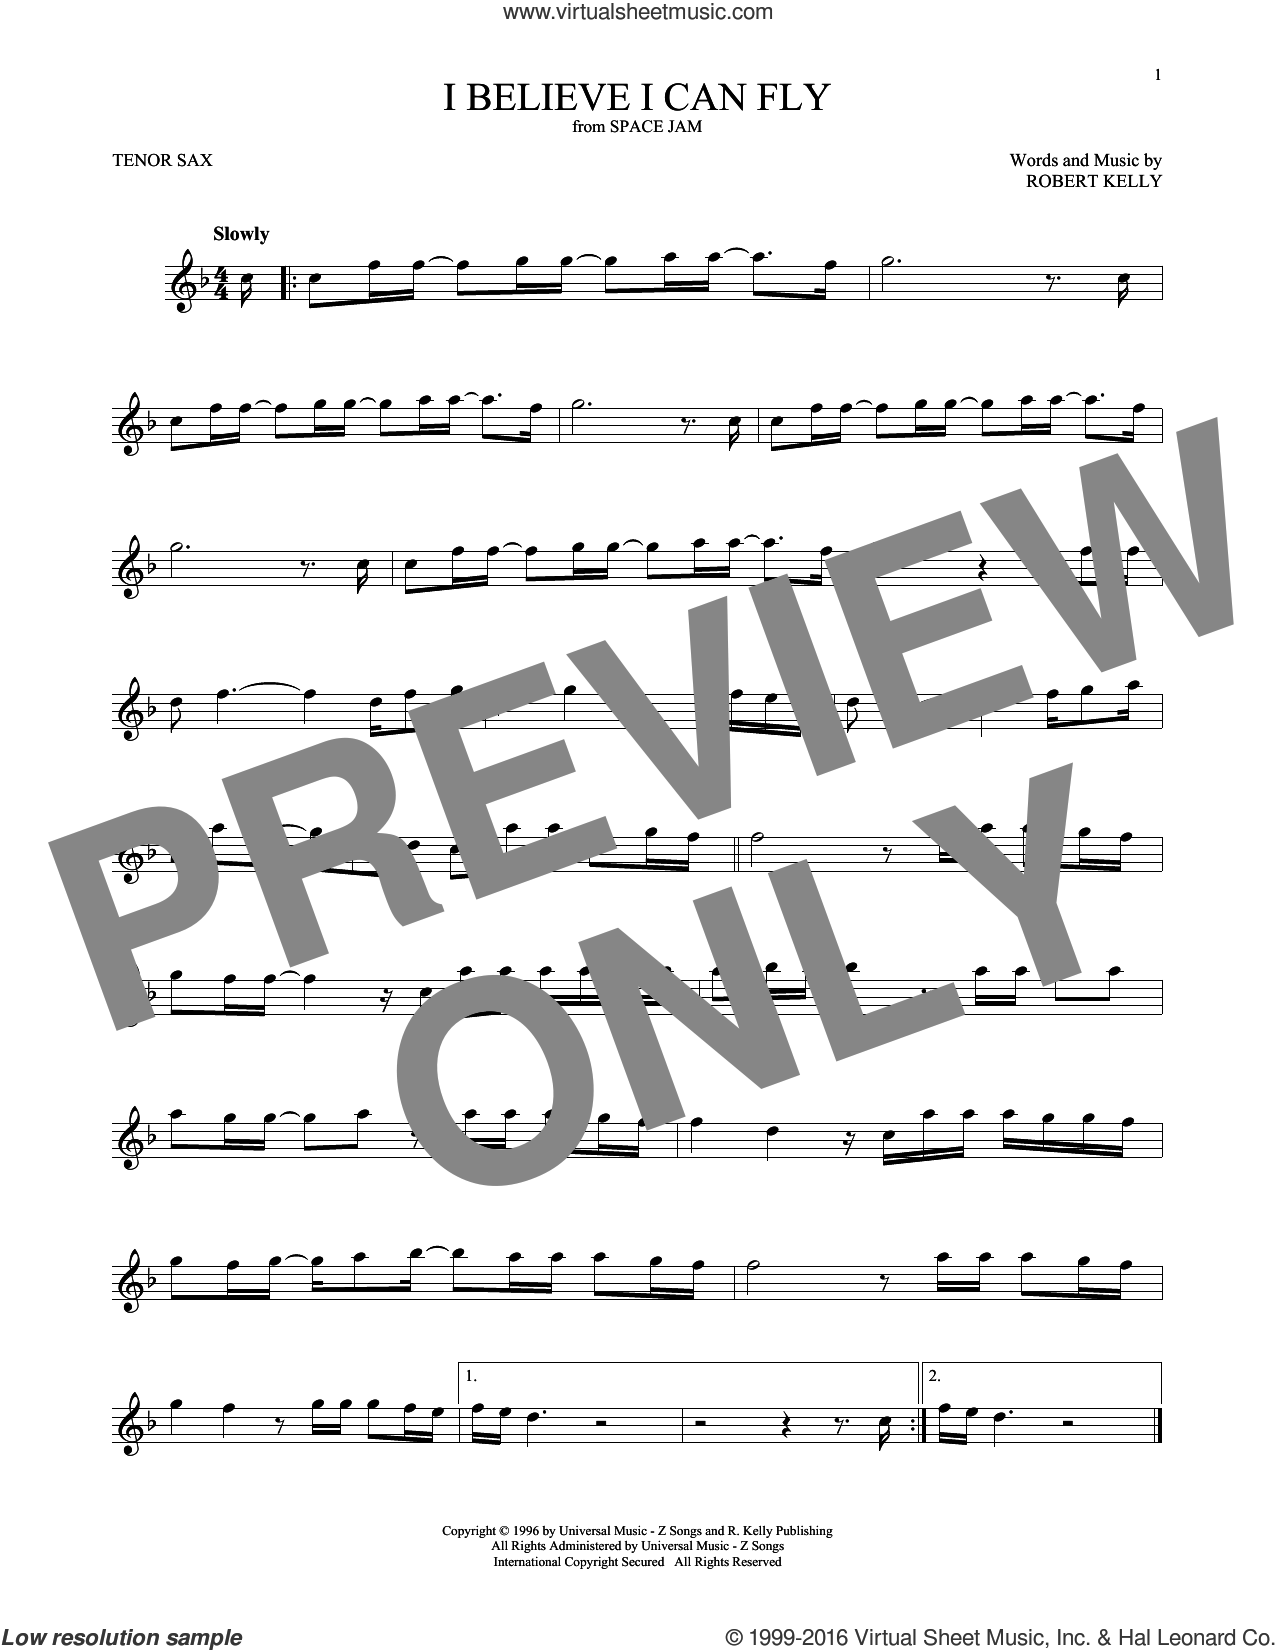 I Believe I Can Fly sheet music for tenor saxophone solo by Robert Kelly and Jermaine Paul, intermediate skill level